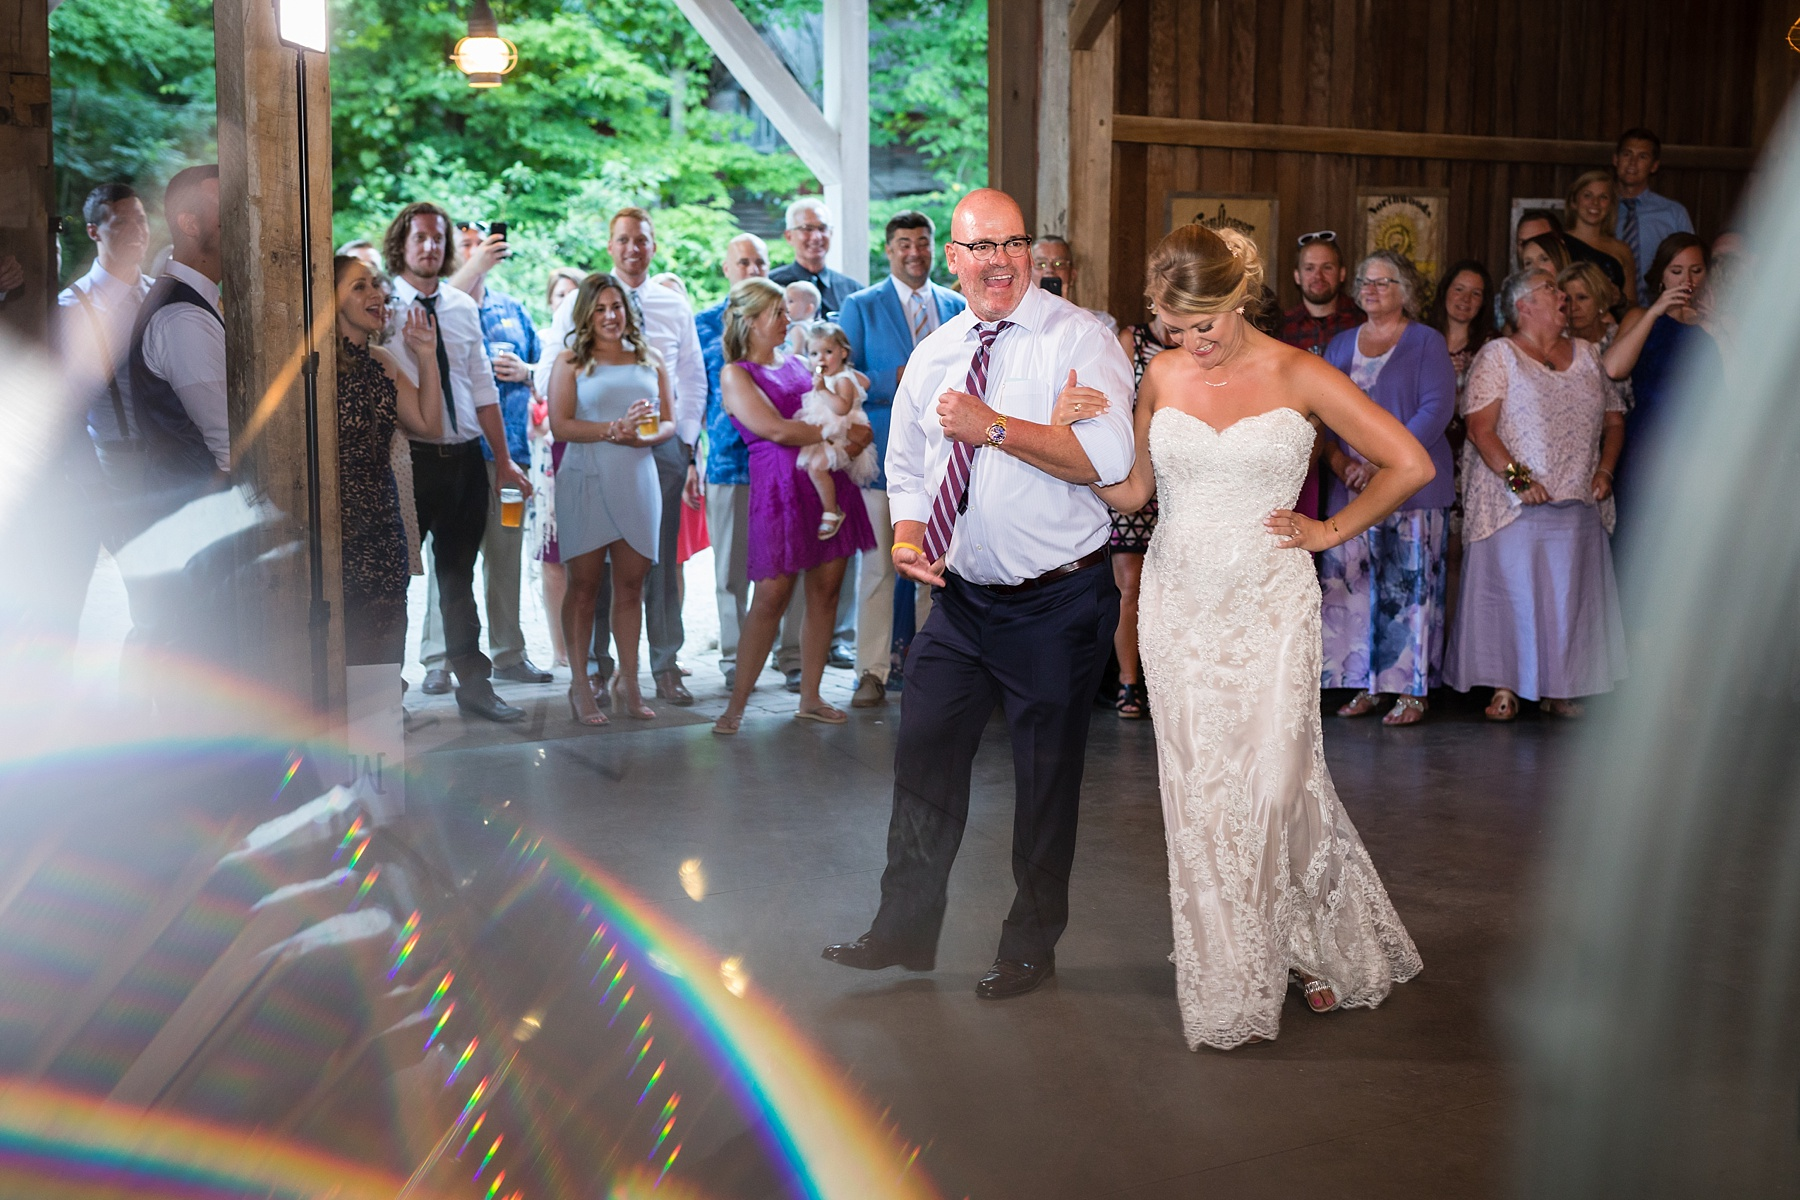 Brandon_Shafer_Photography_Millcreek_Wilde_Barn_Wedding_0044.jpg